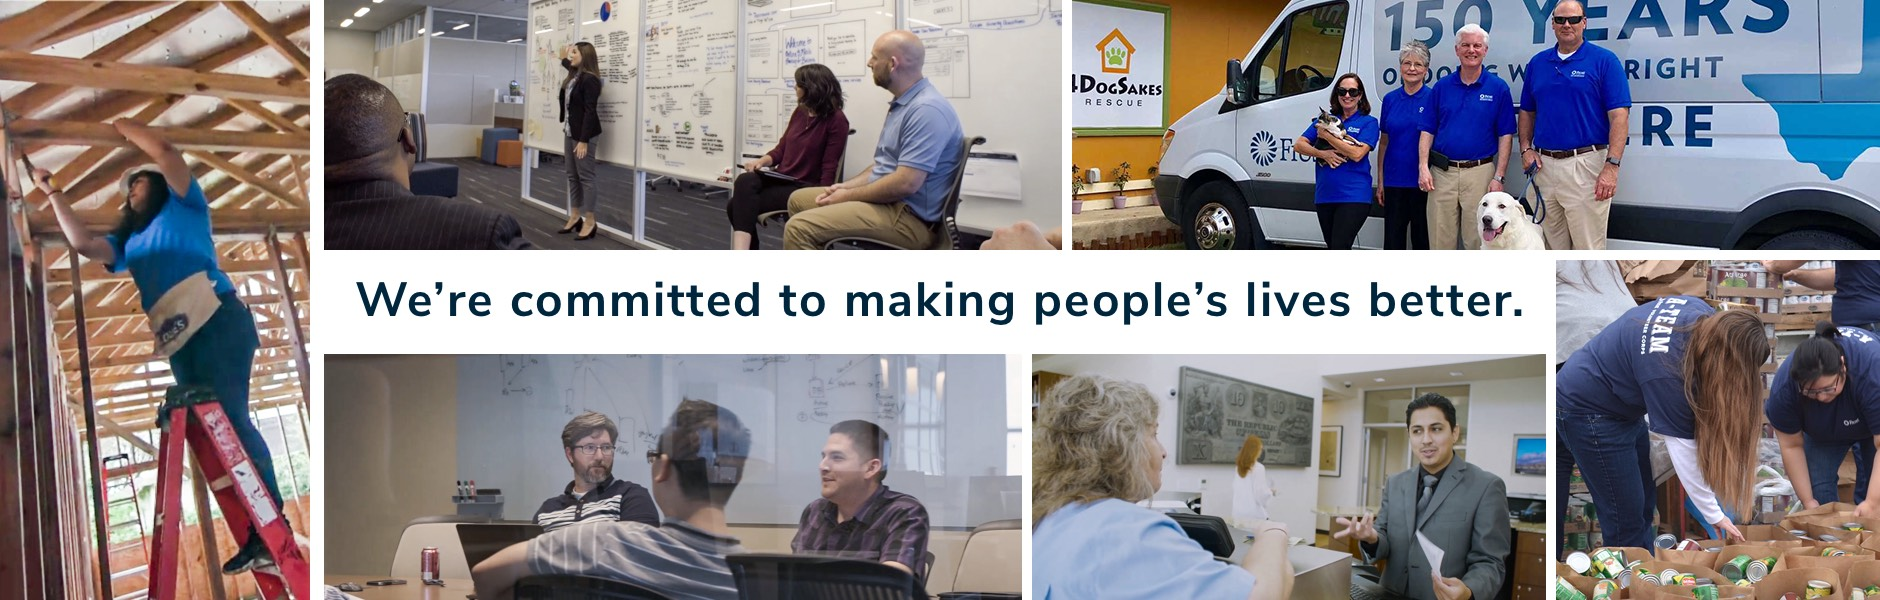 We're committed to making people's lives better